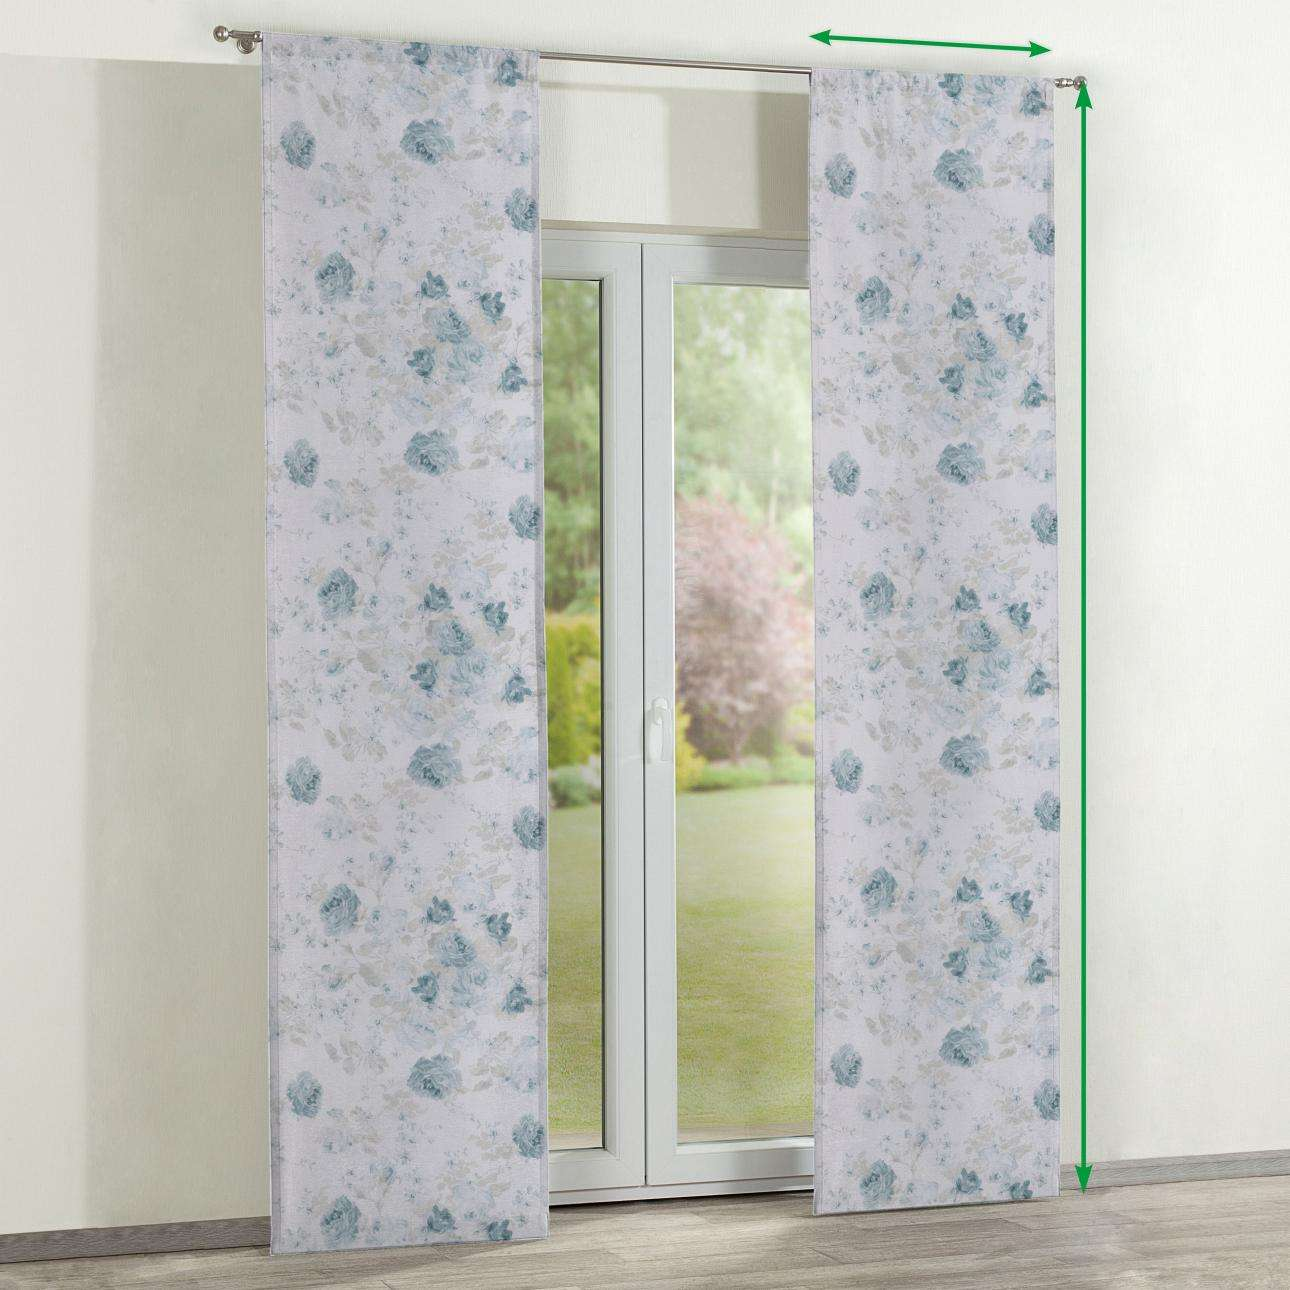 Slot panel curtains – Set of 2 in collection Flowers, fabric: 140-89